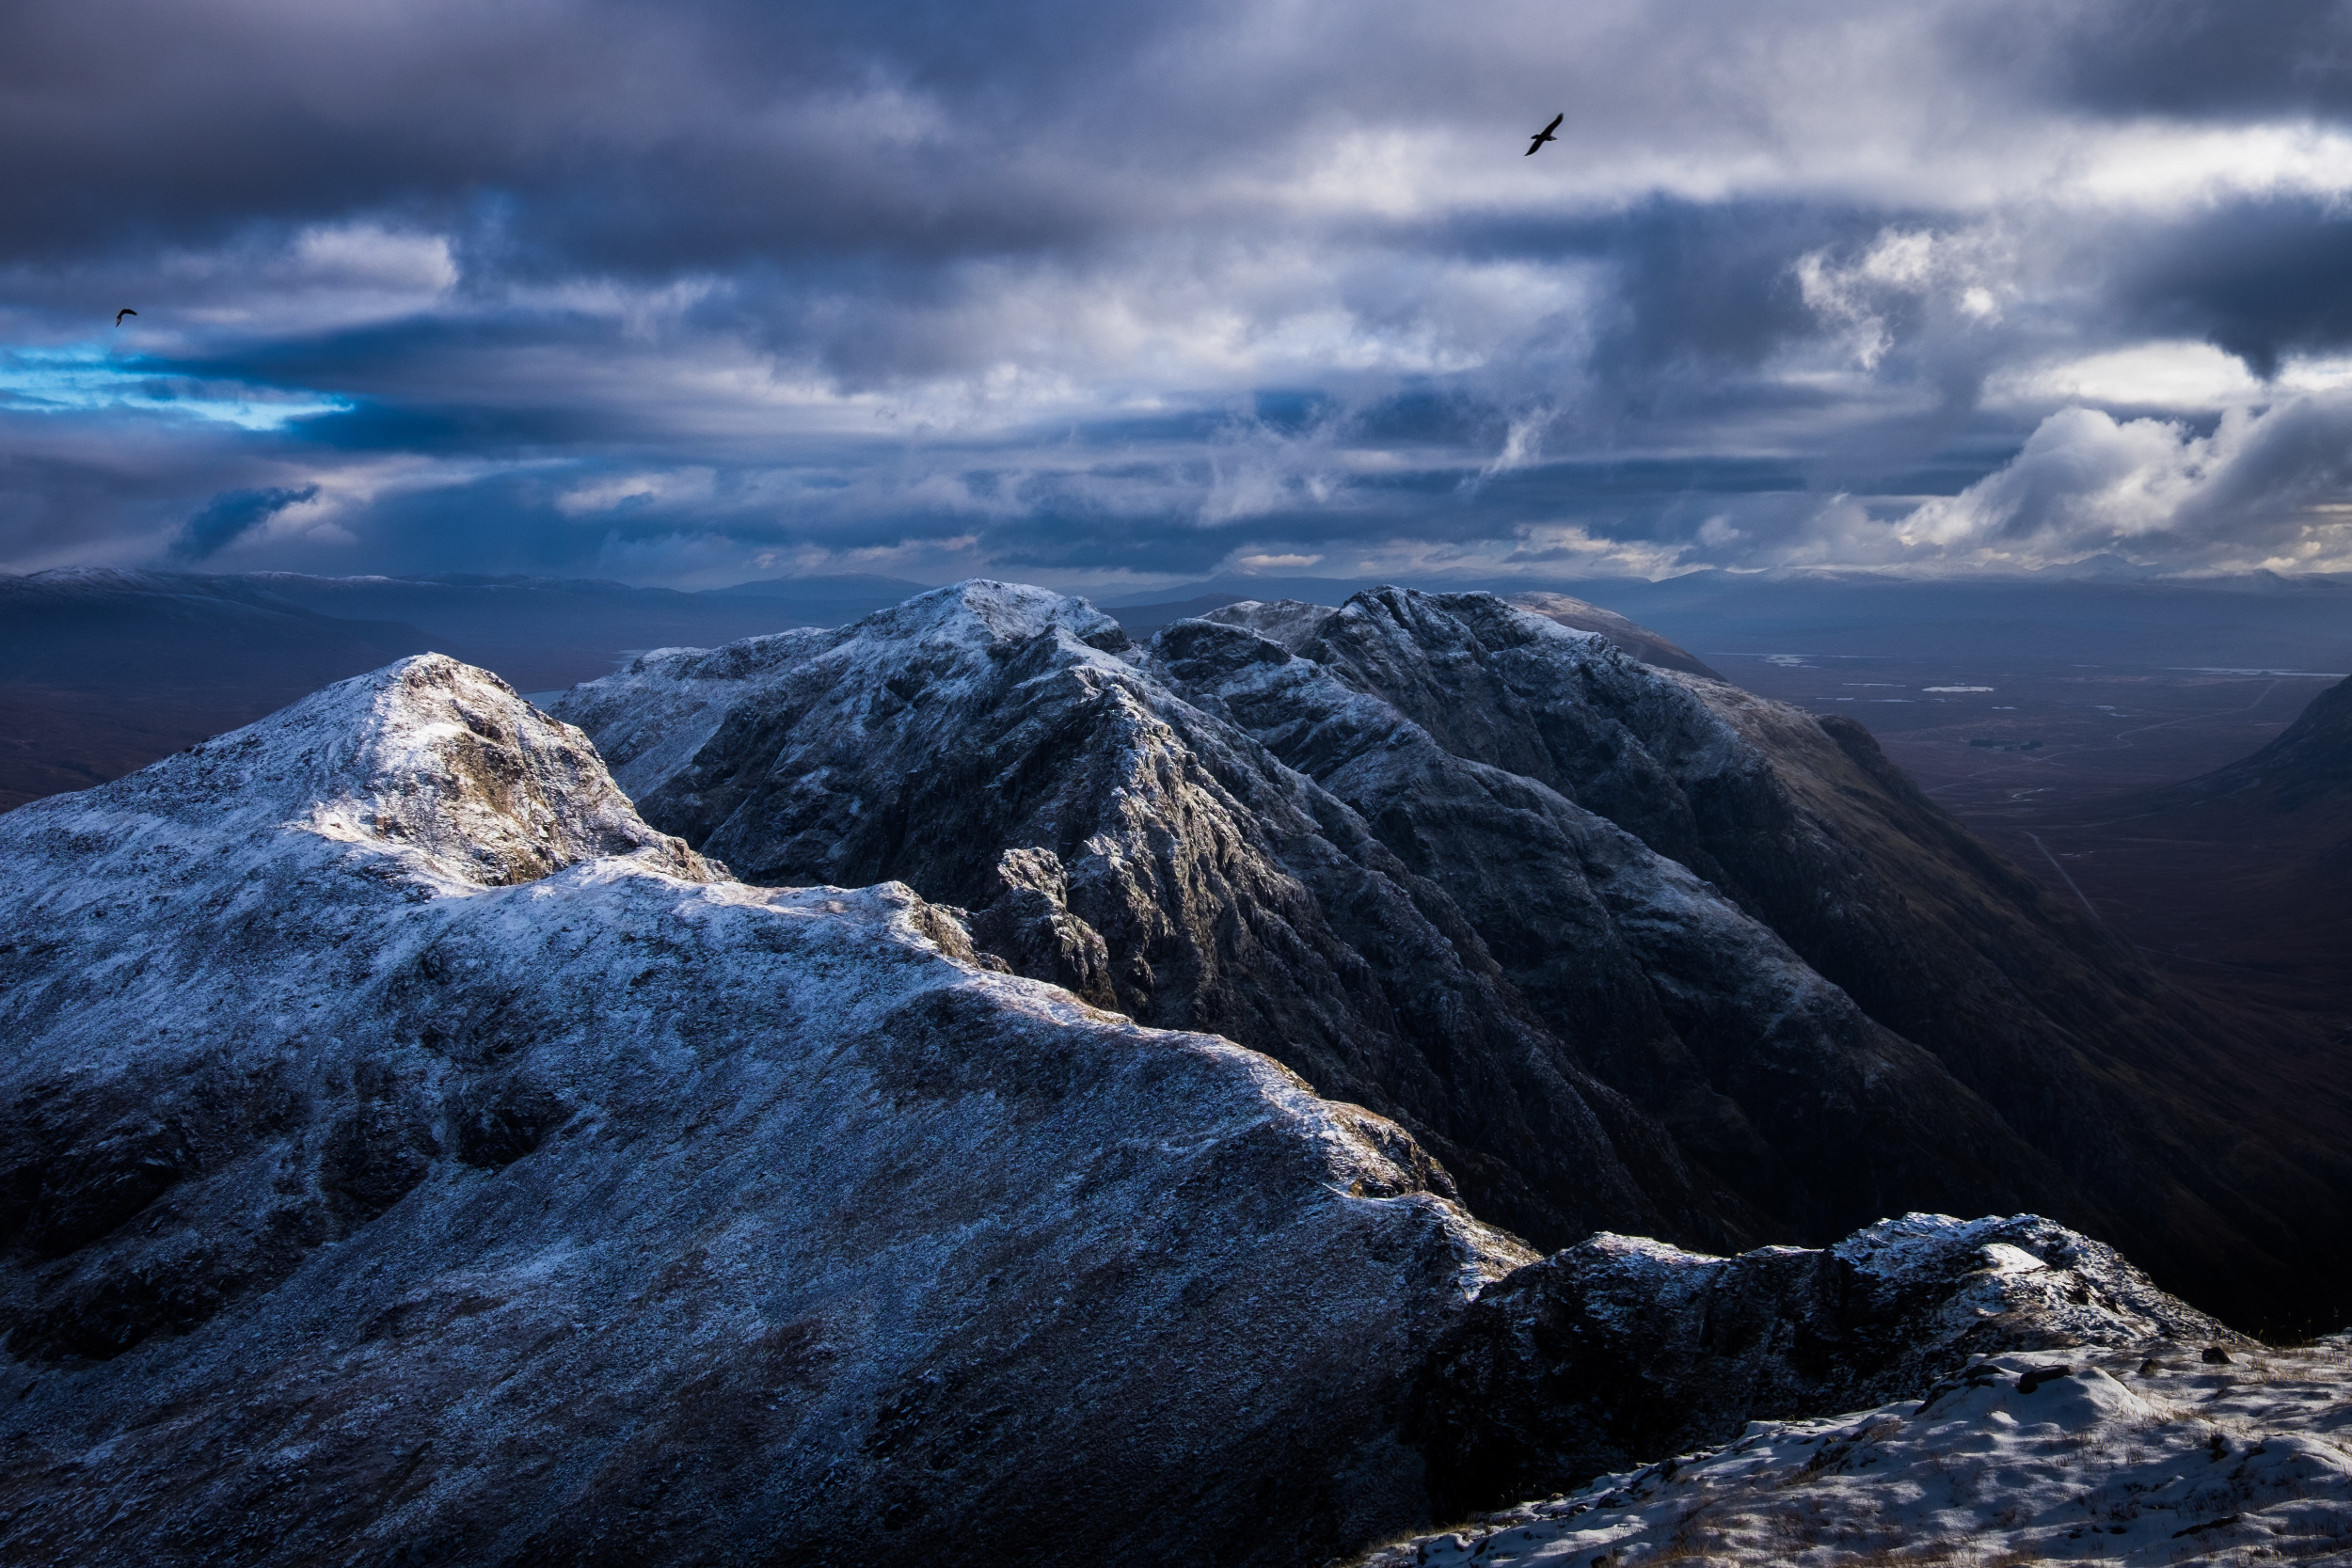 """Dreams and Nightmares"" taken at Aonach Eagach, above Glen Coe in Scotland."